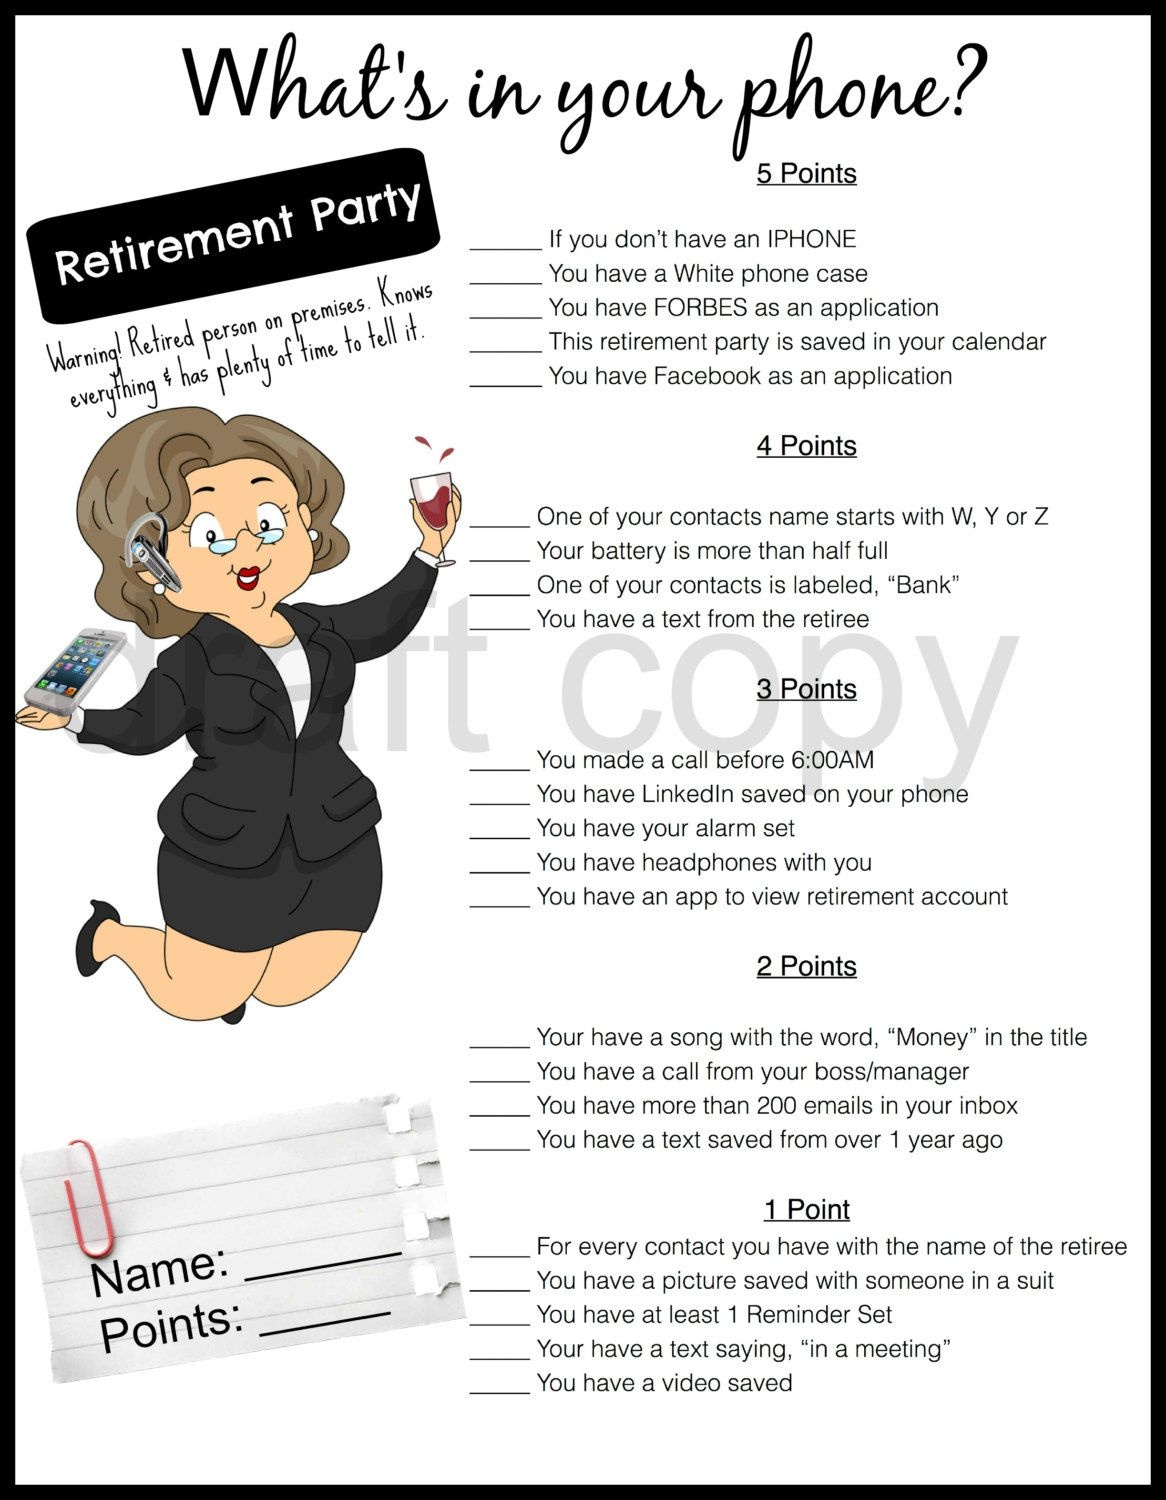 Retirement Party Game-Whats In Your Phone | Retirement Party Games - Retirement Party Games Free Printable